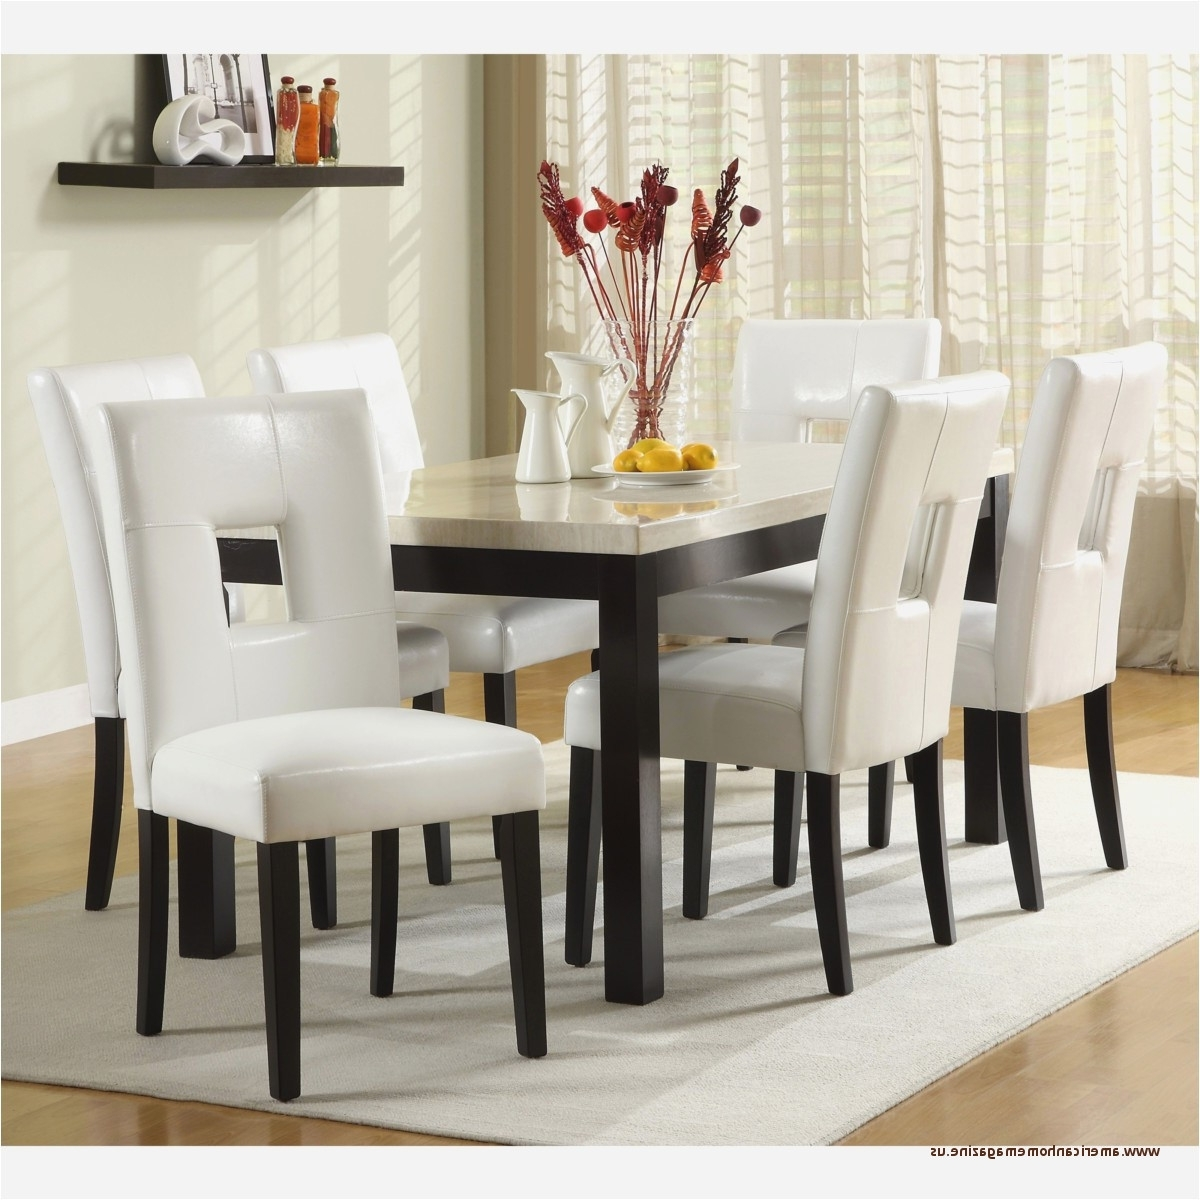 Dining Chairs Ebay throughout Latest 6 Dining Room Chairs Ebay Modern Upholstered Dining Chairs Simple In